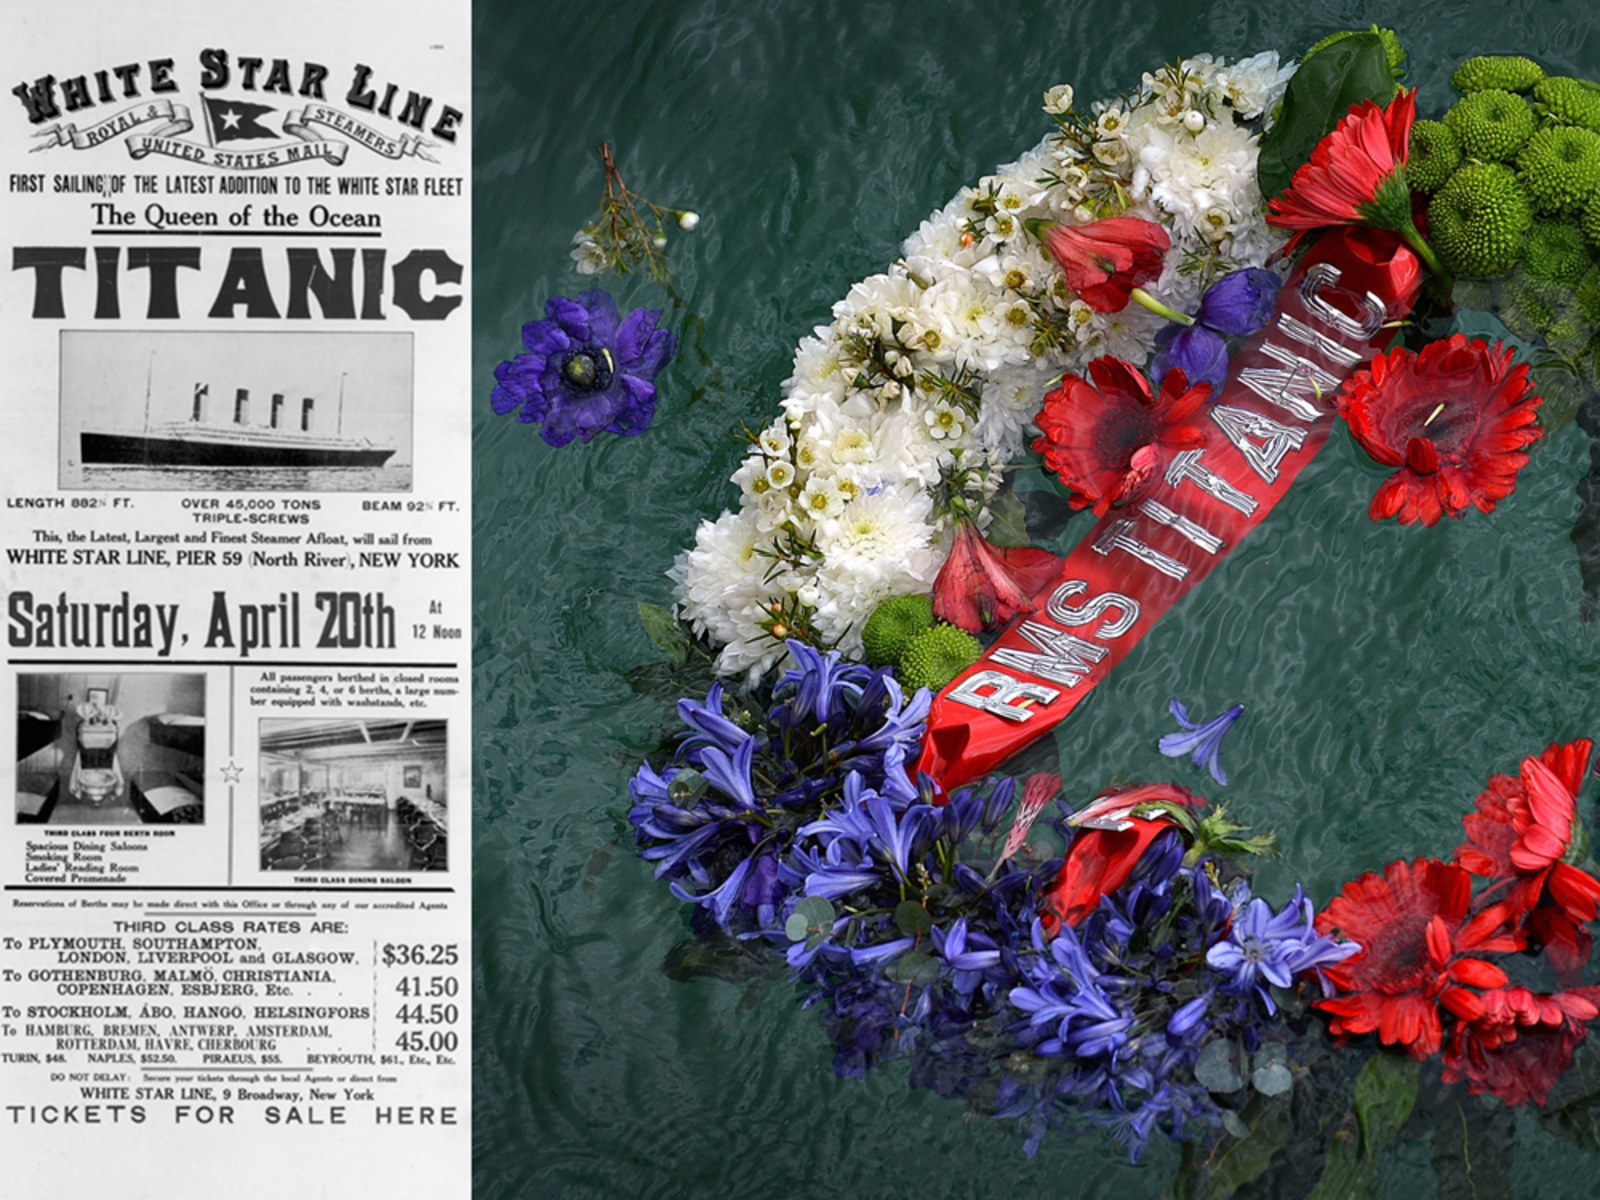 Image: A 1912 advertisement for the British luxury passenger liner 'Titanic; The Titanic, White Star, Liner on the stocks in Harland & Wolff's shipyard, Belfast, Northern Ireland; A wreath floats in berths 43/44 from where the RMS Titanic set sail on its